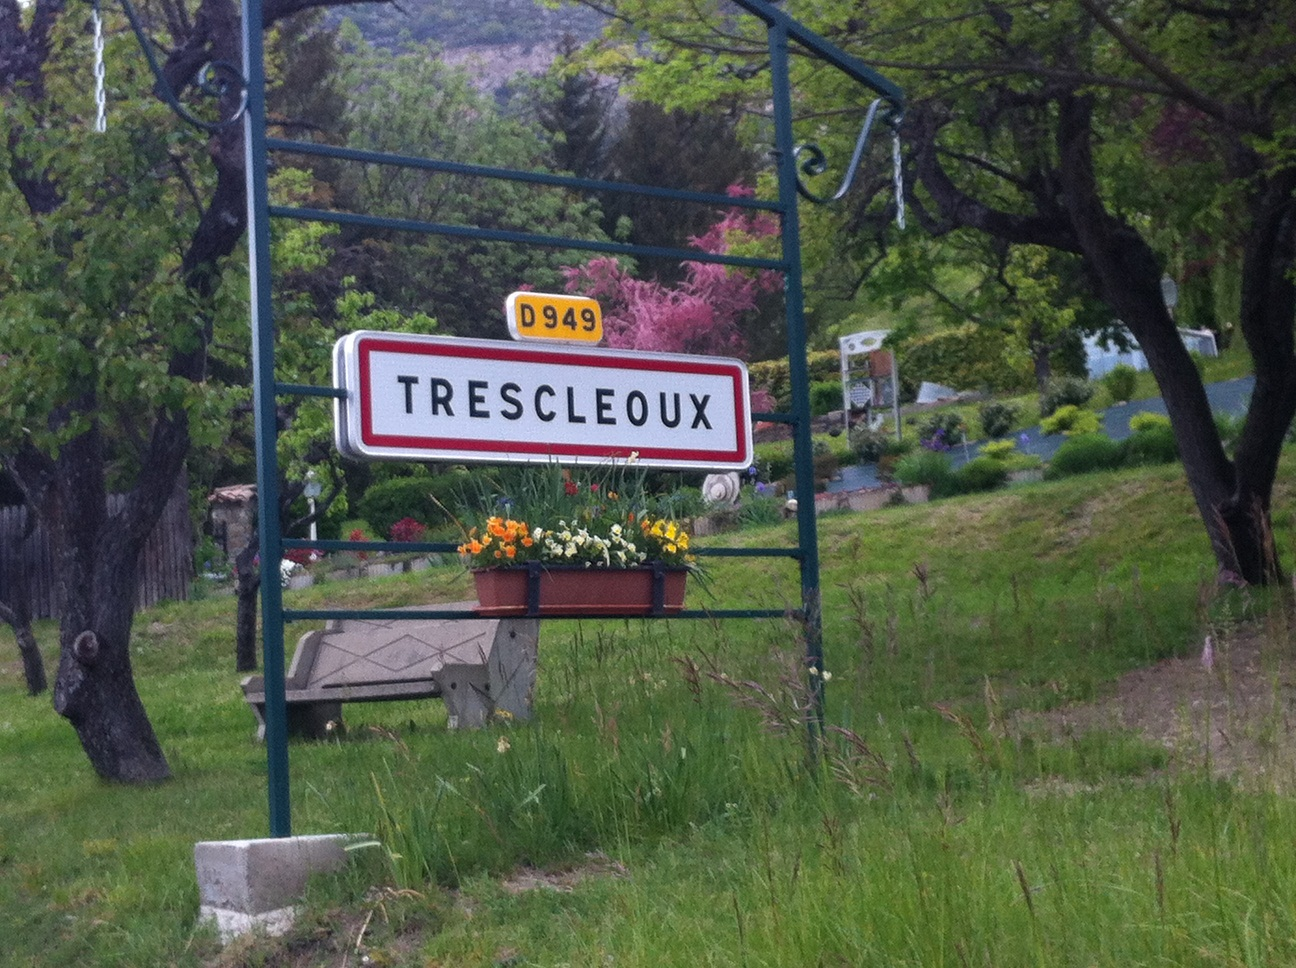 1-Le village du trail